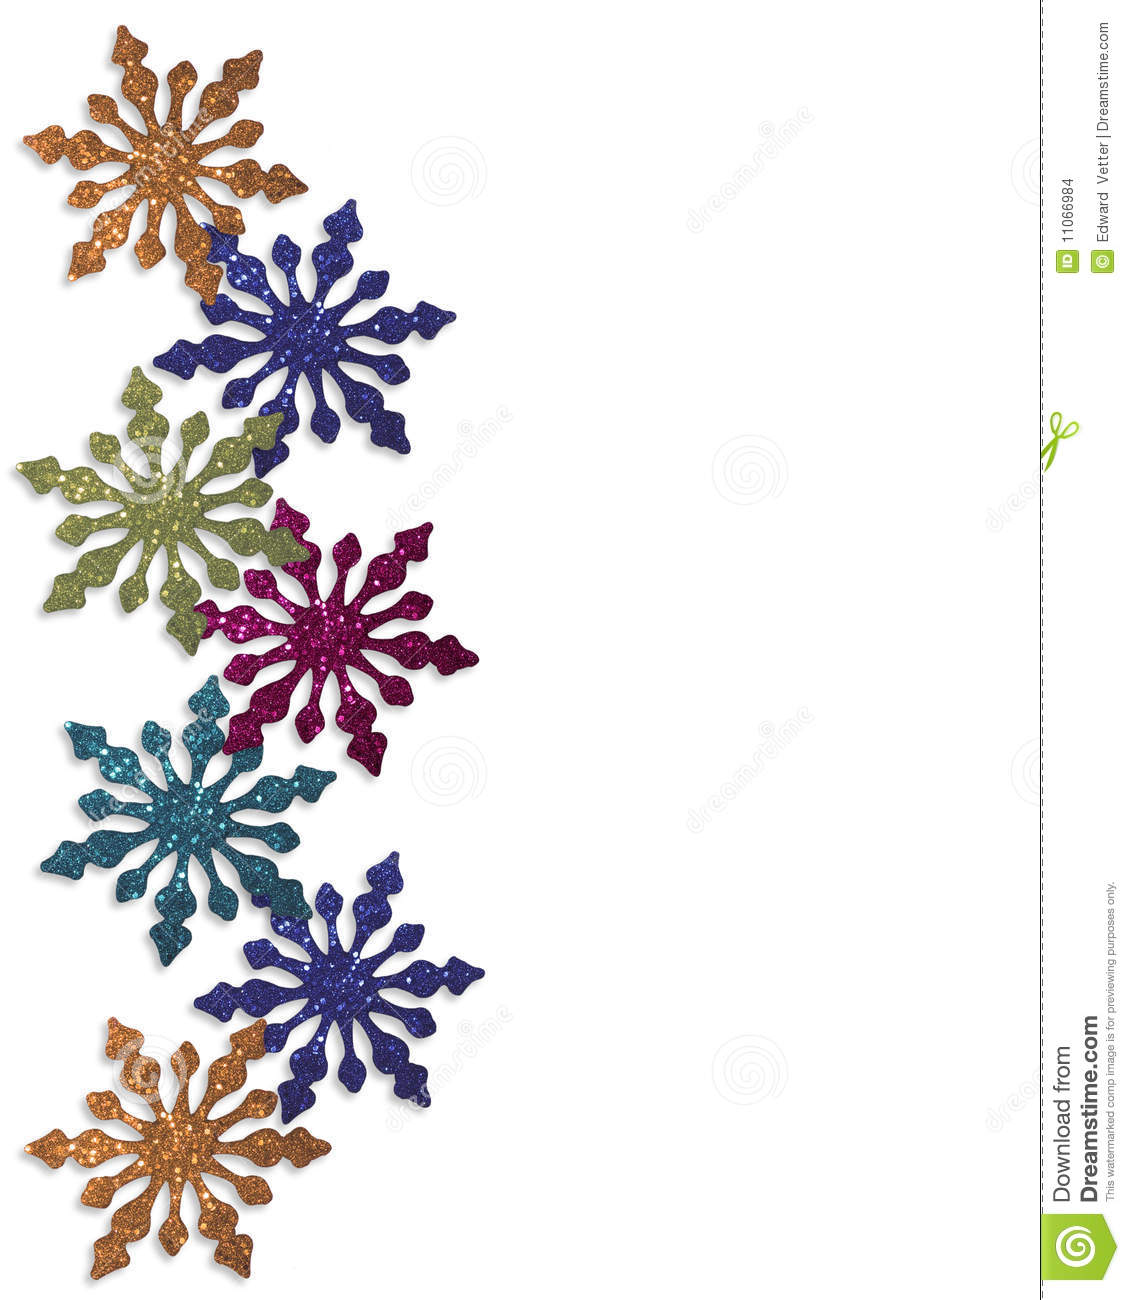 Christmas Design With Colorful Snowflakes Ornaments For Christmas